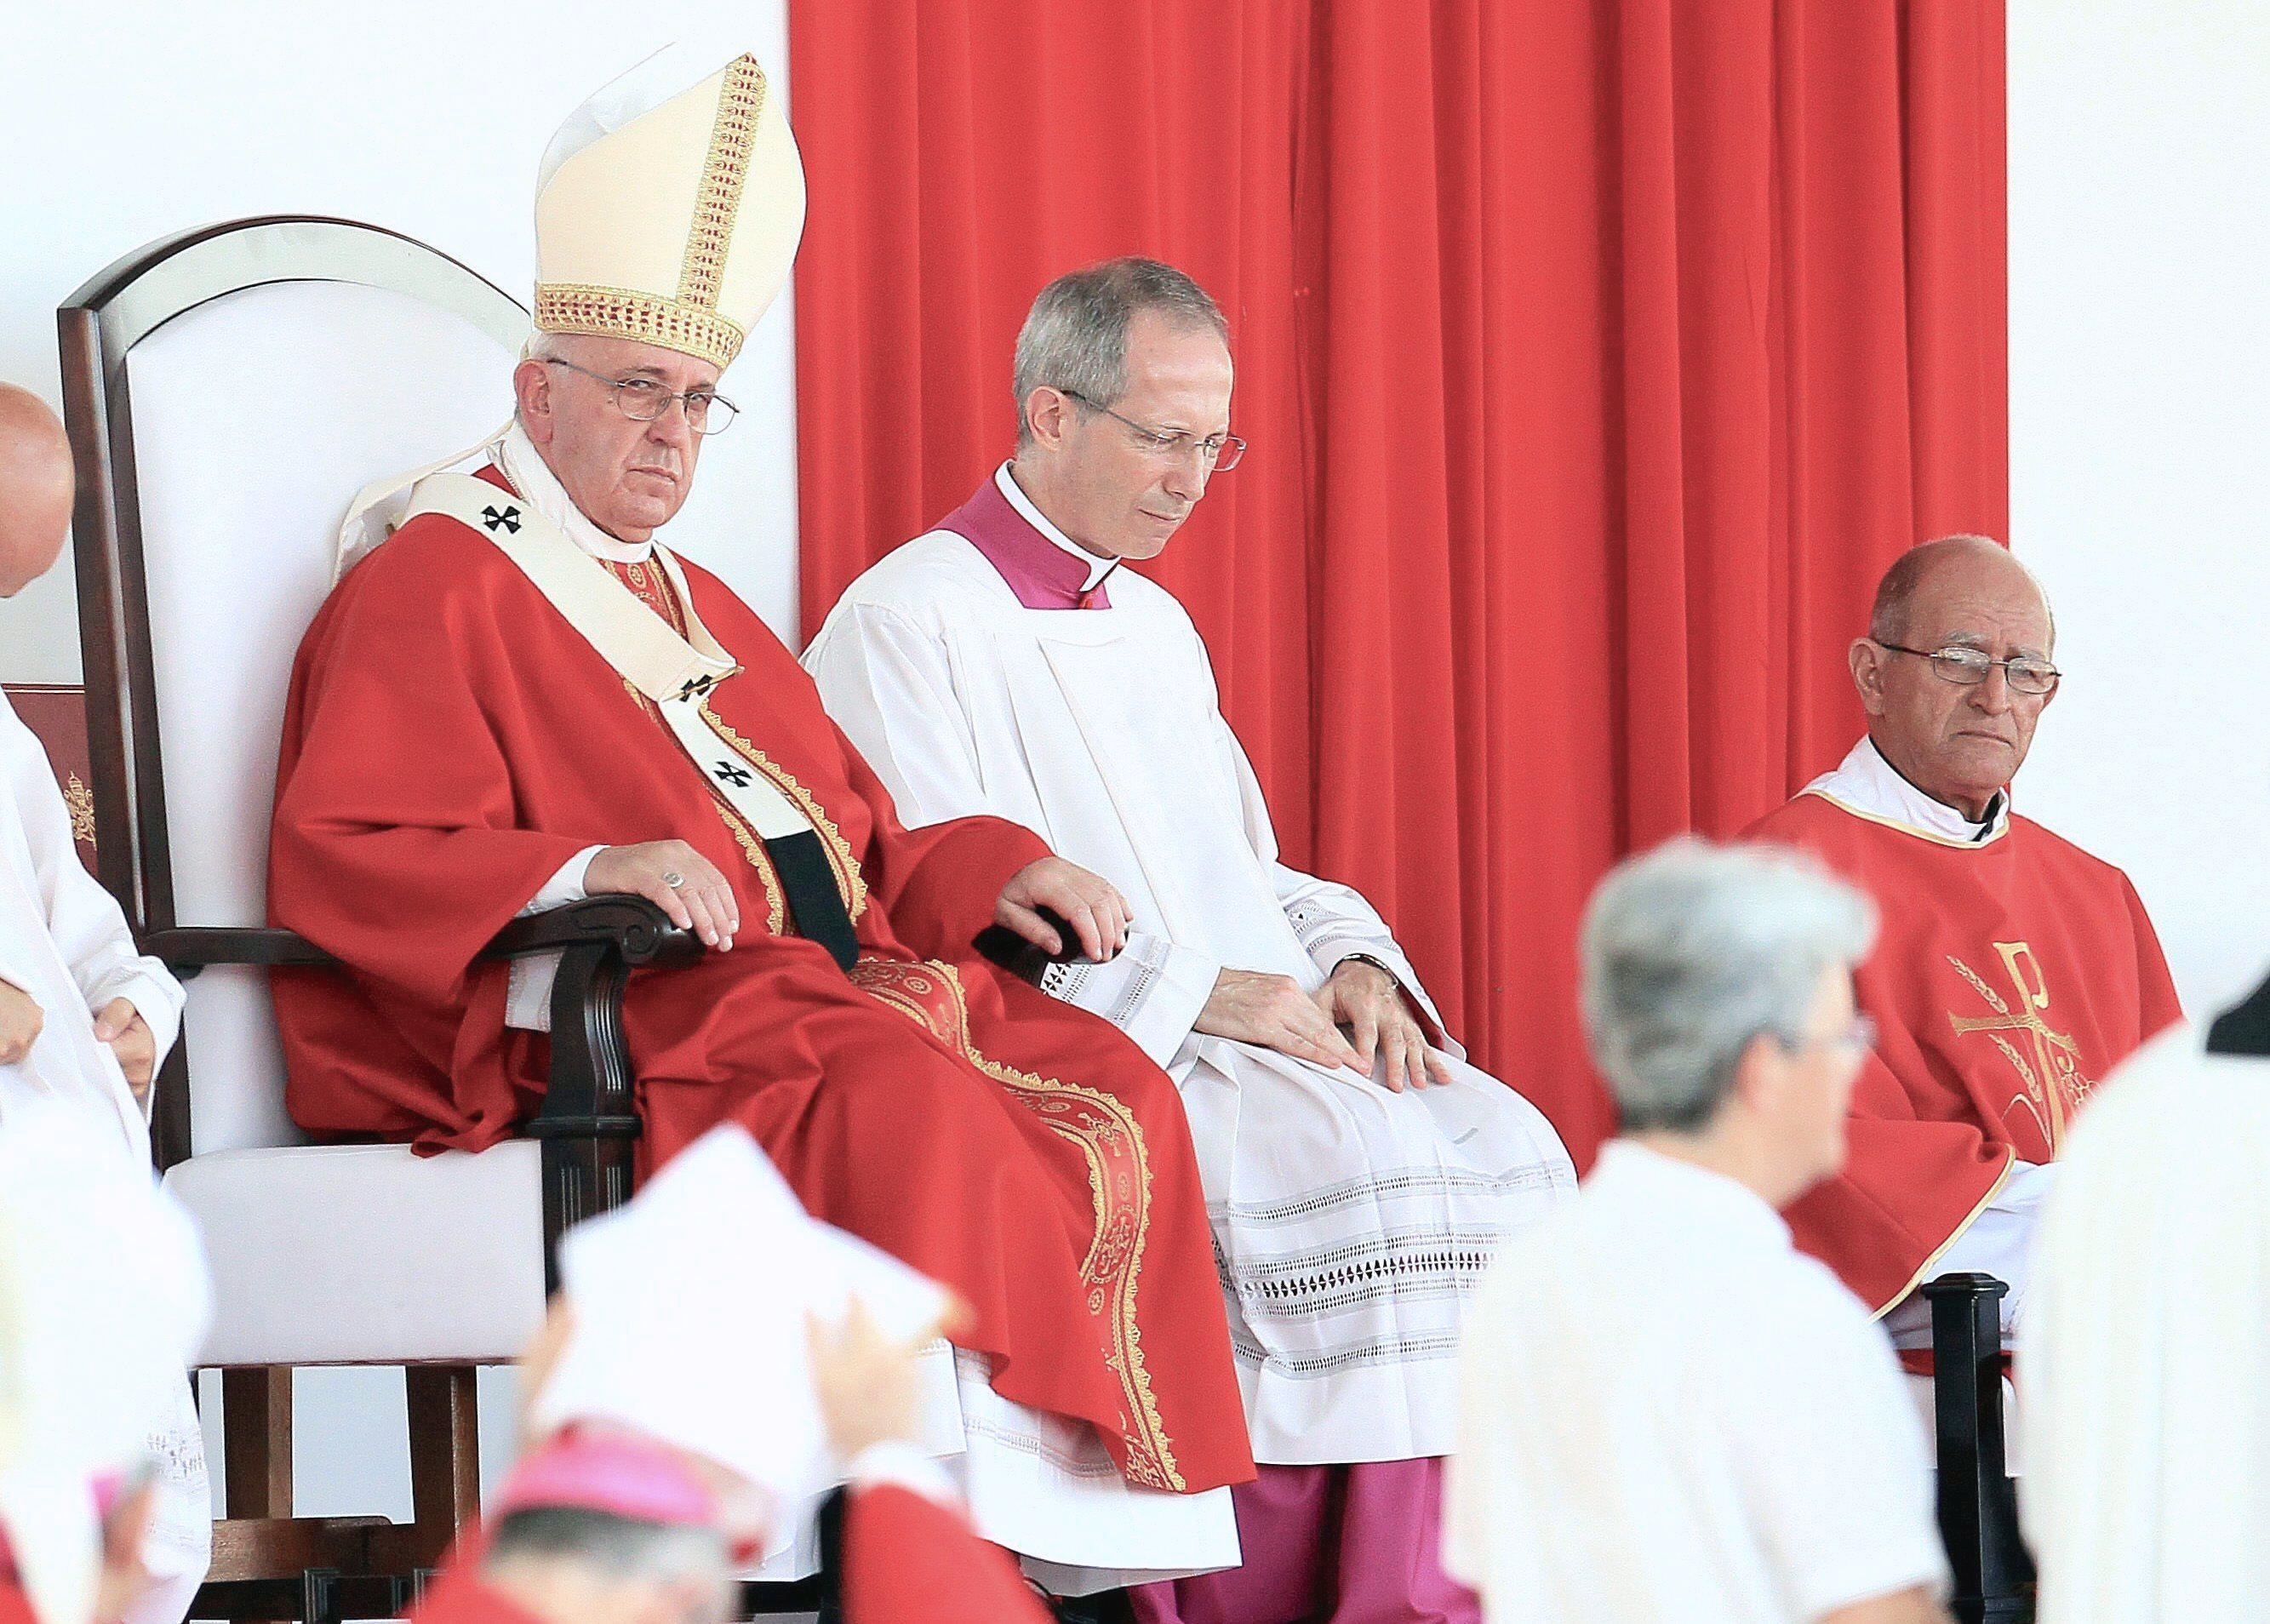 Pope Francis (L) looks on during a mass at Revolution Square in the city of Holguin